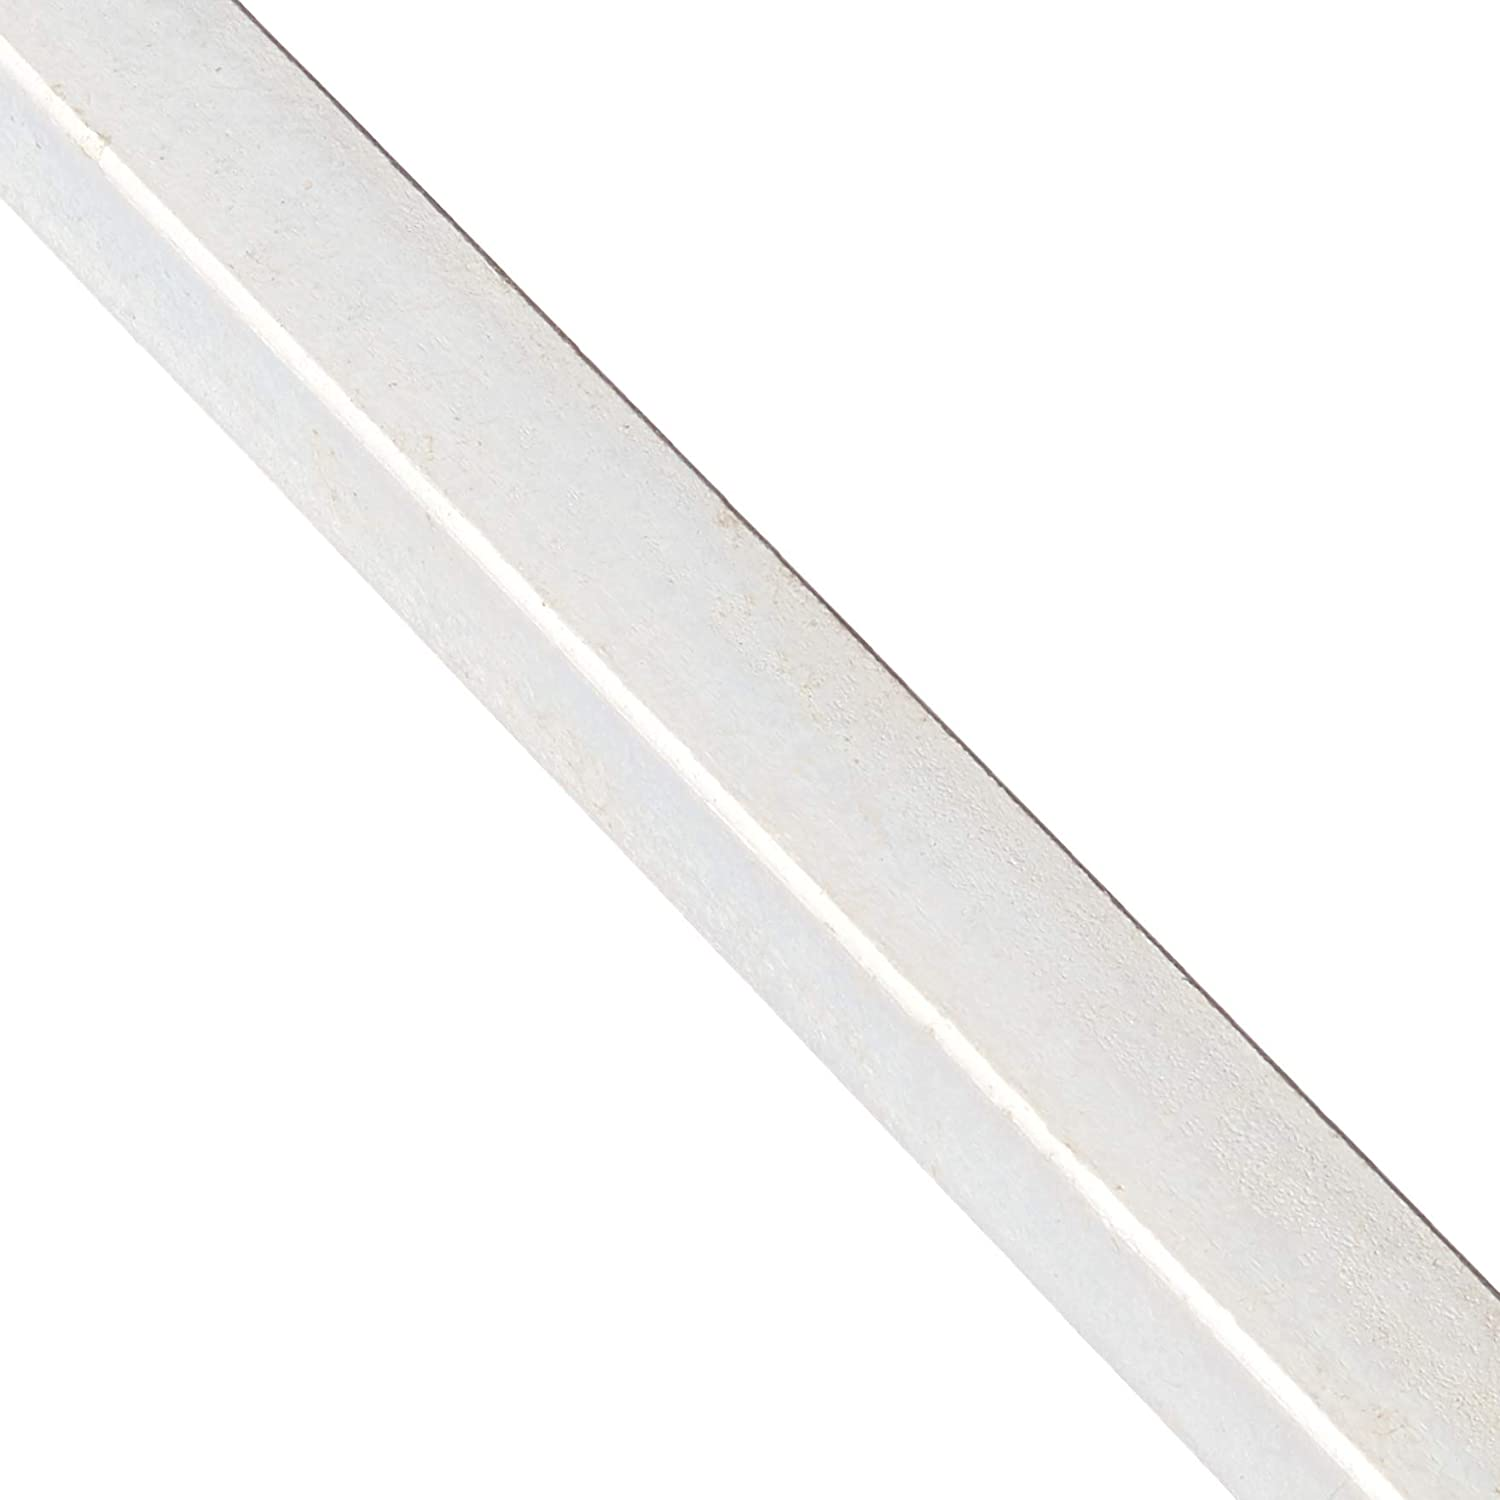 Forney 49717 Galvanized Plated Cold Rolled Keystock 3//4 x 1